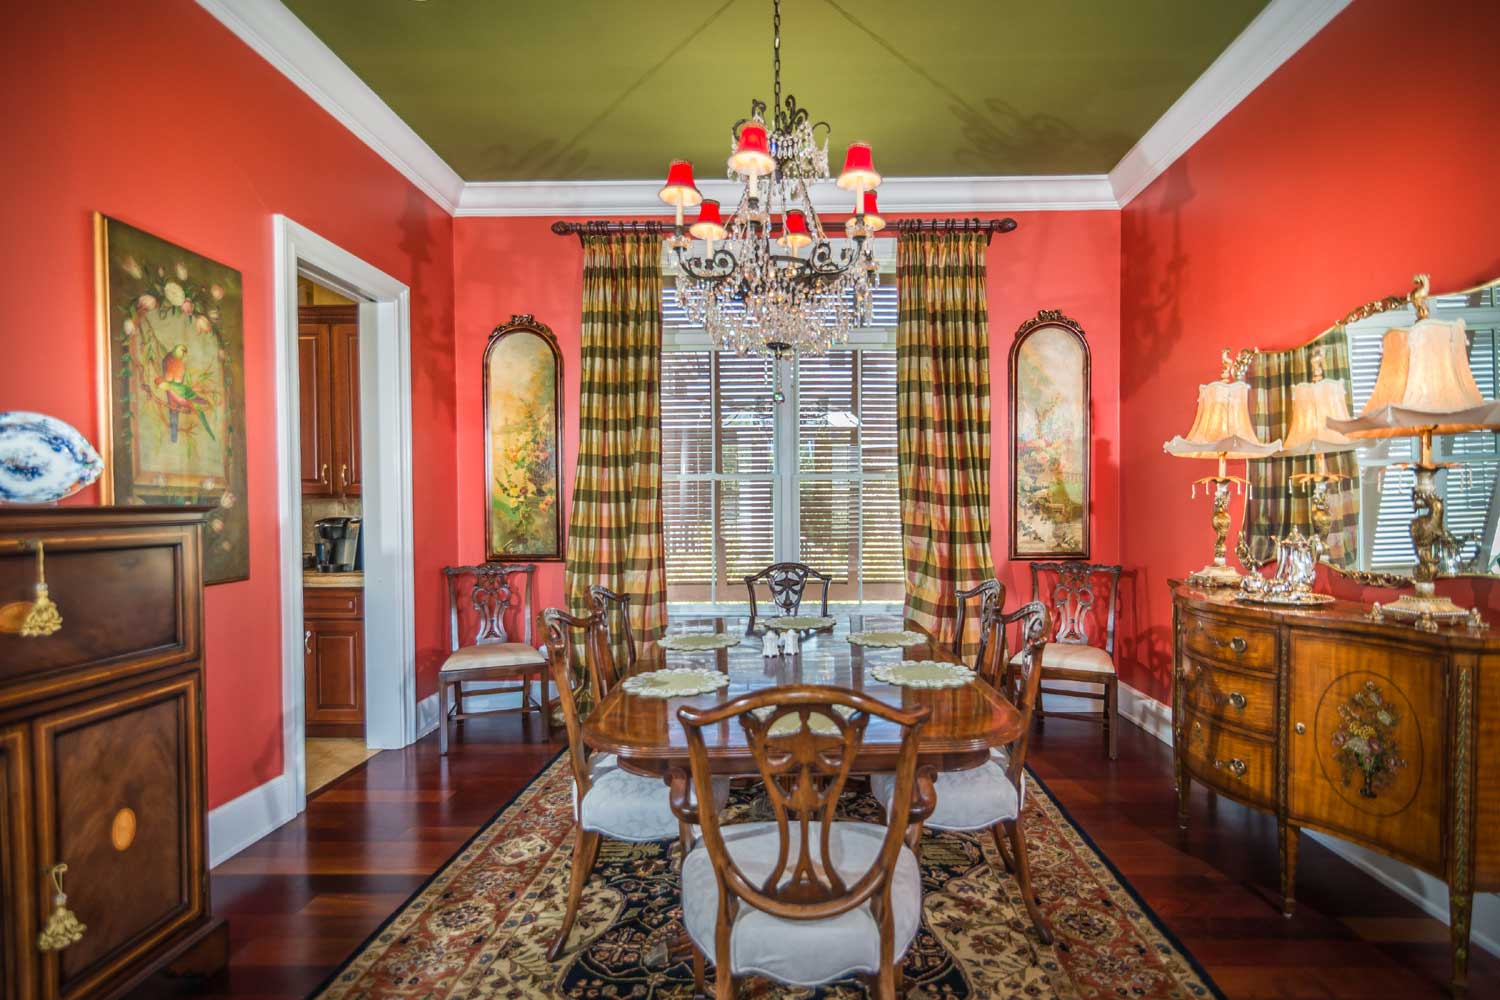 <b>Georgetown, South Carolina</b><br/><i>6 Bedrooms, 5,500 sq. ft.</i><br/>Waterfront estate with private dock